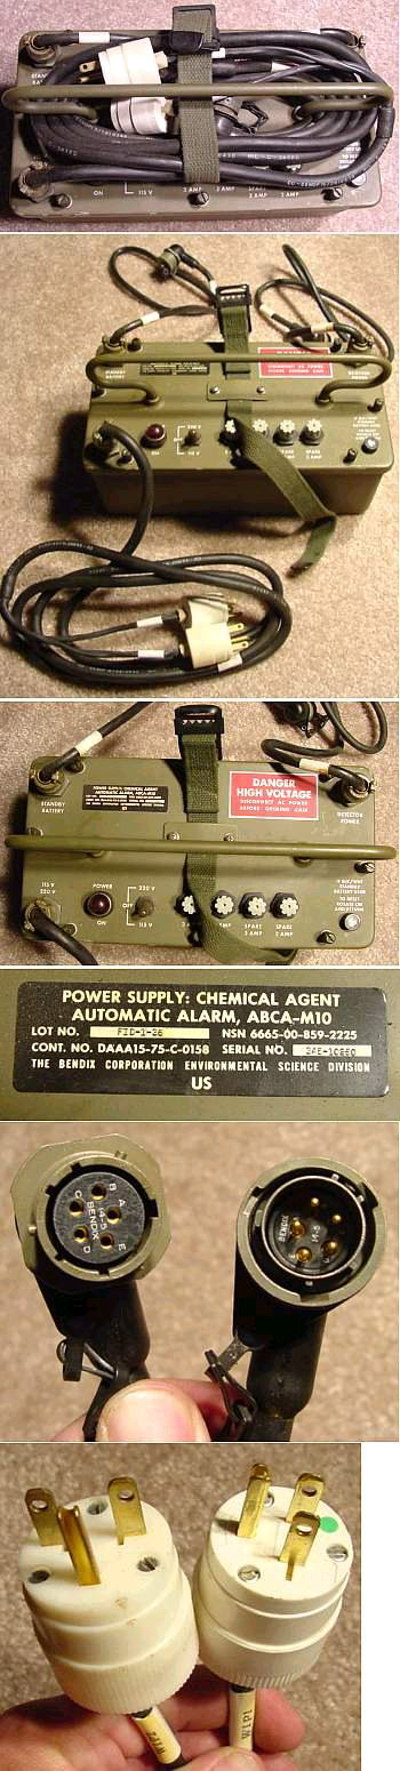 Military Chemical Agent Alarm Power Supply